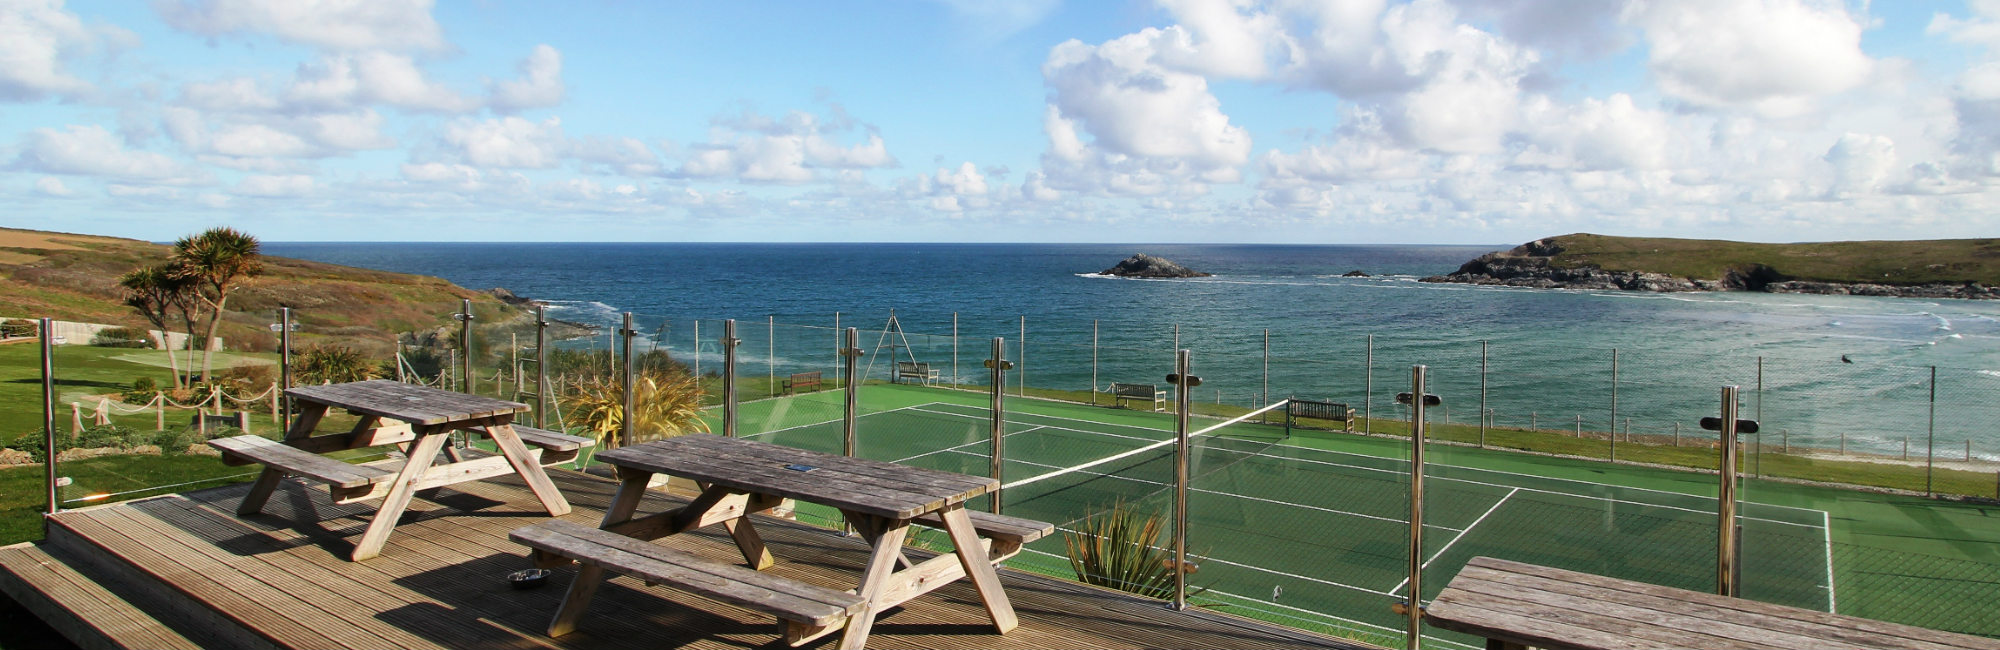 C Bay Cafe tennis court view - Leisure Club